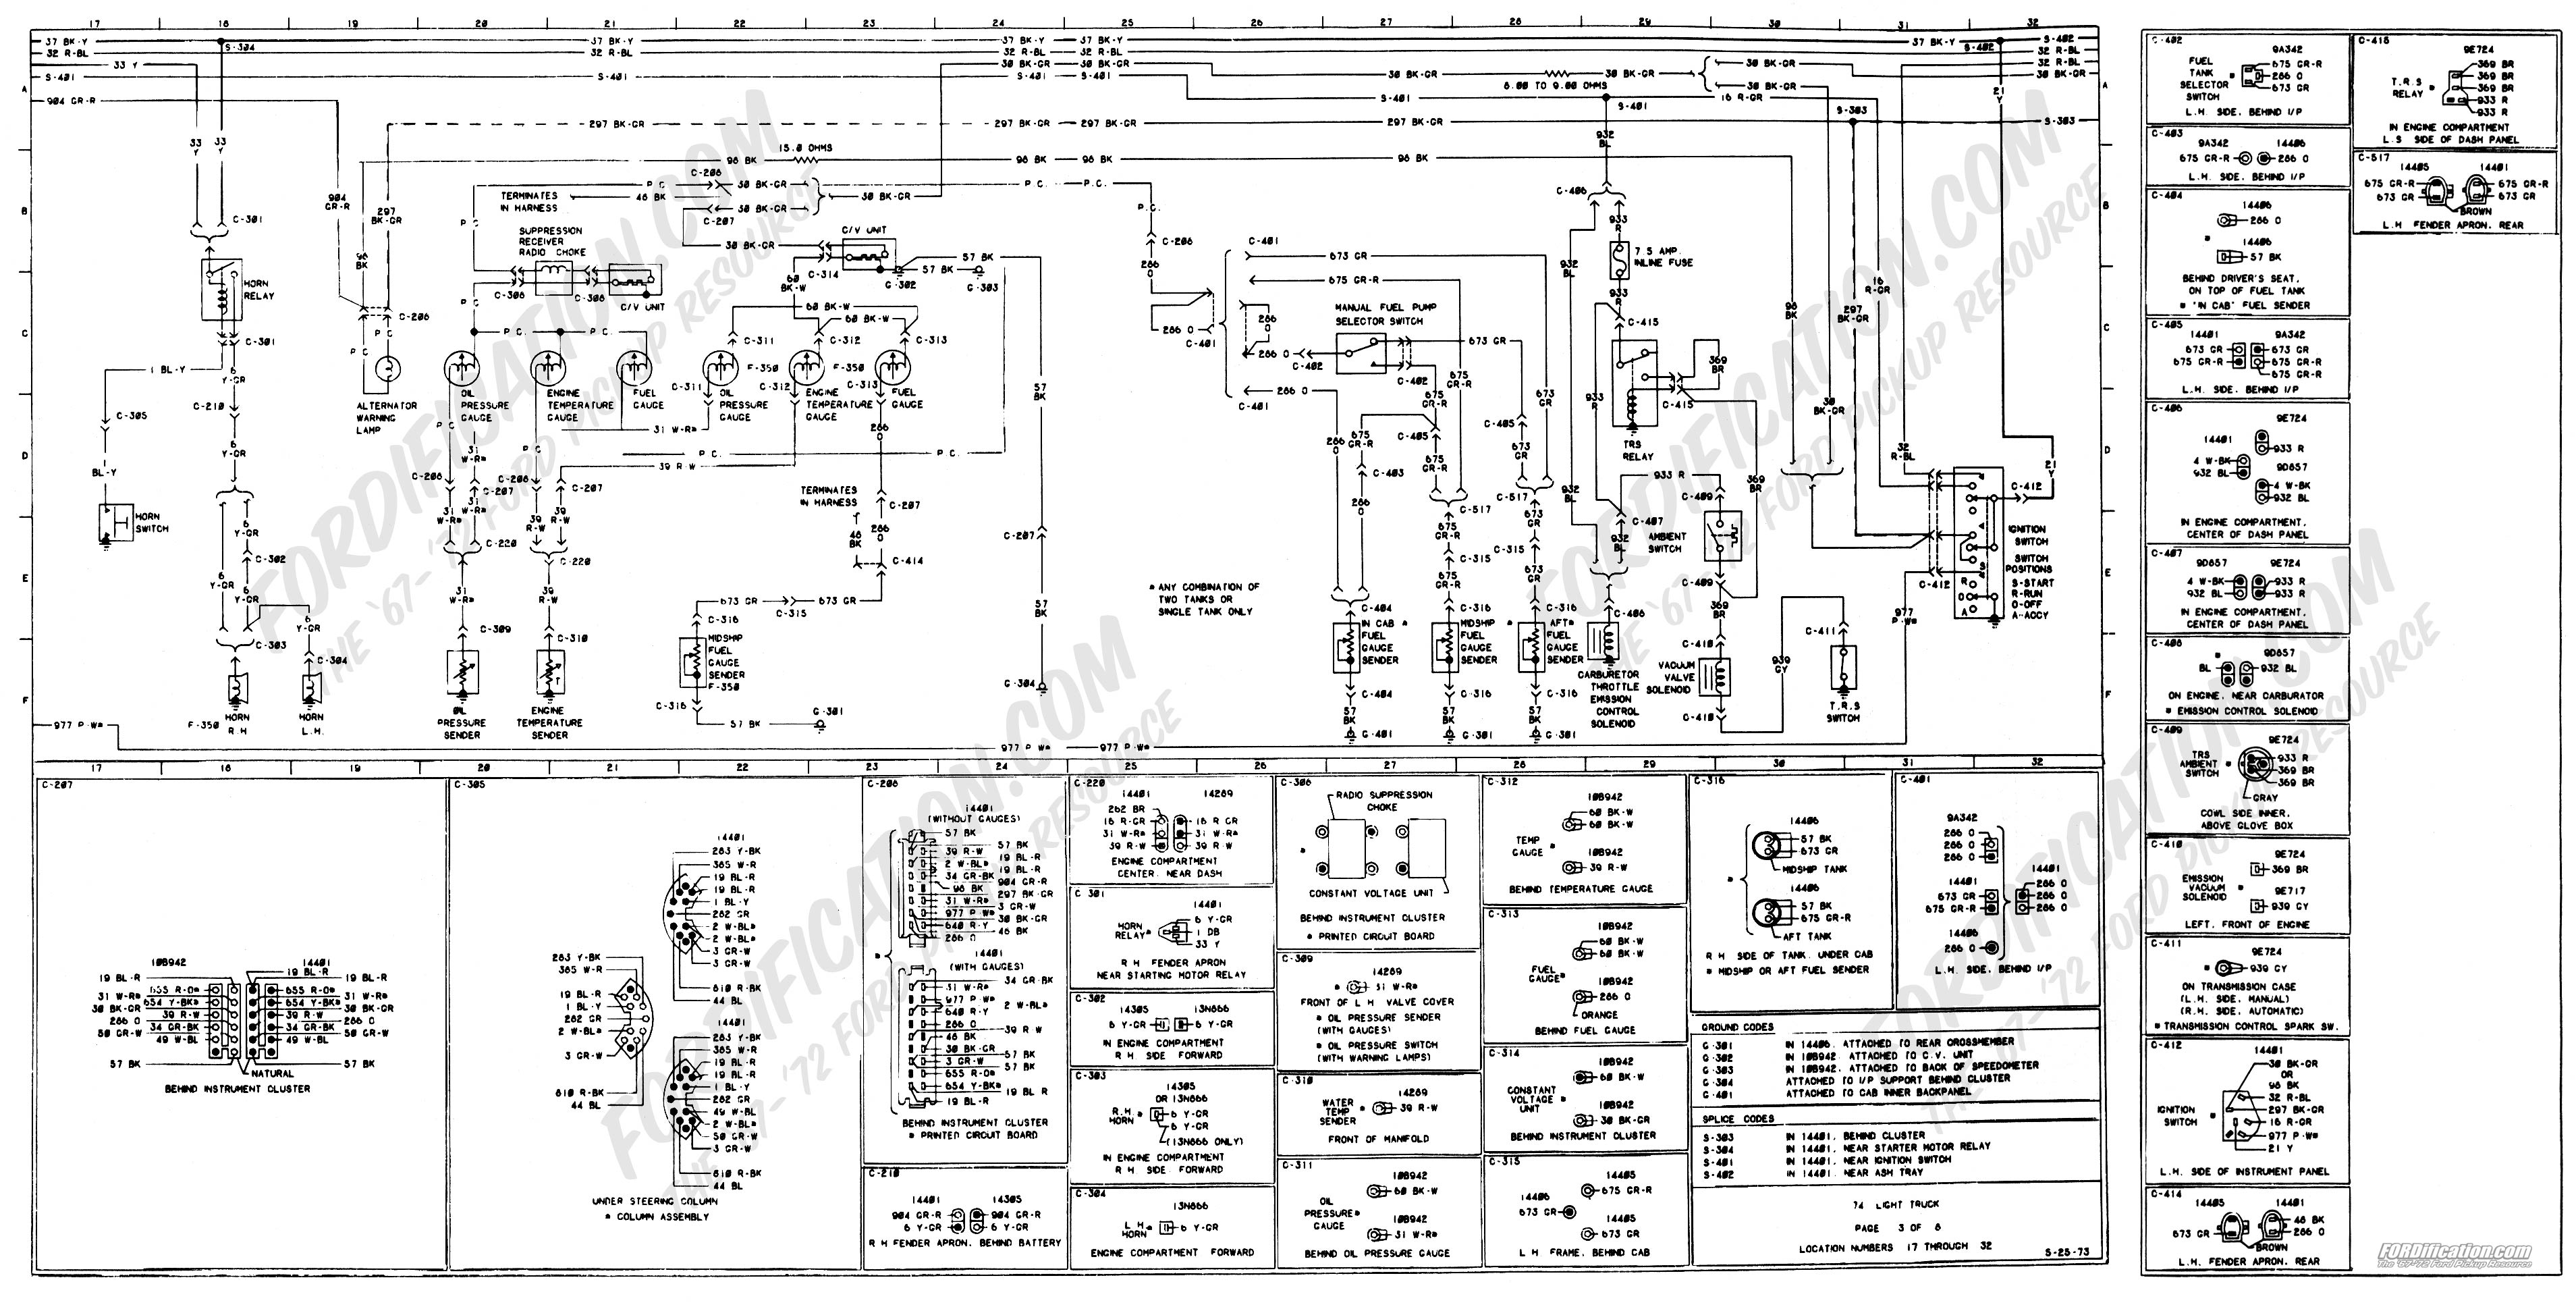 1973 1979 ford truck wiring diagrams schematics fordification net rh  fordification net 2002 ford f350 wiring diagram ford f350 trailer wiring  diagram